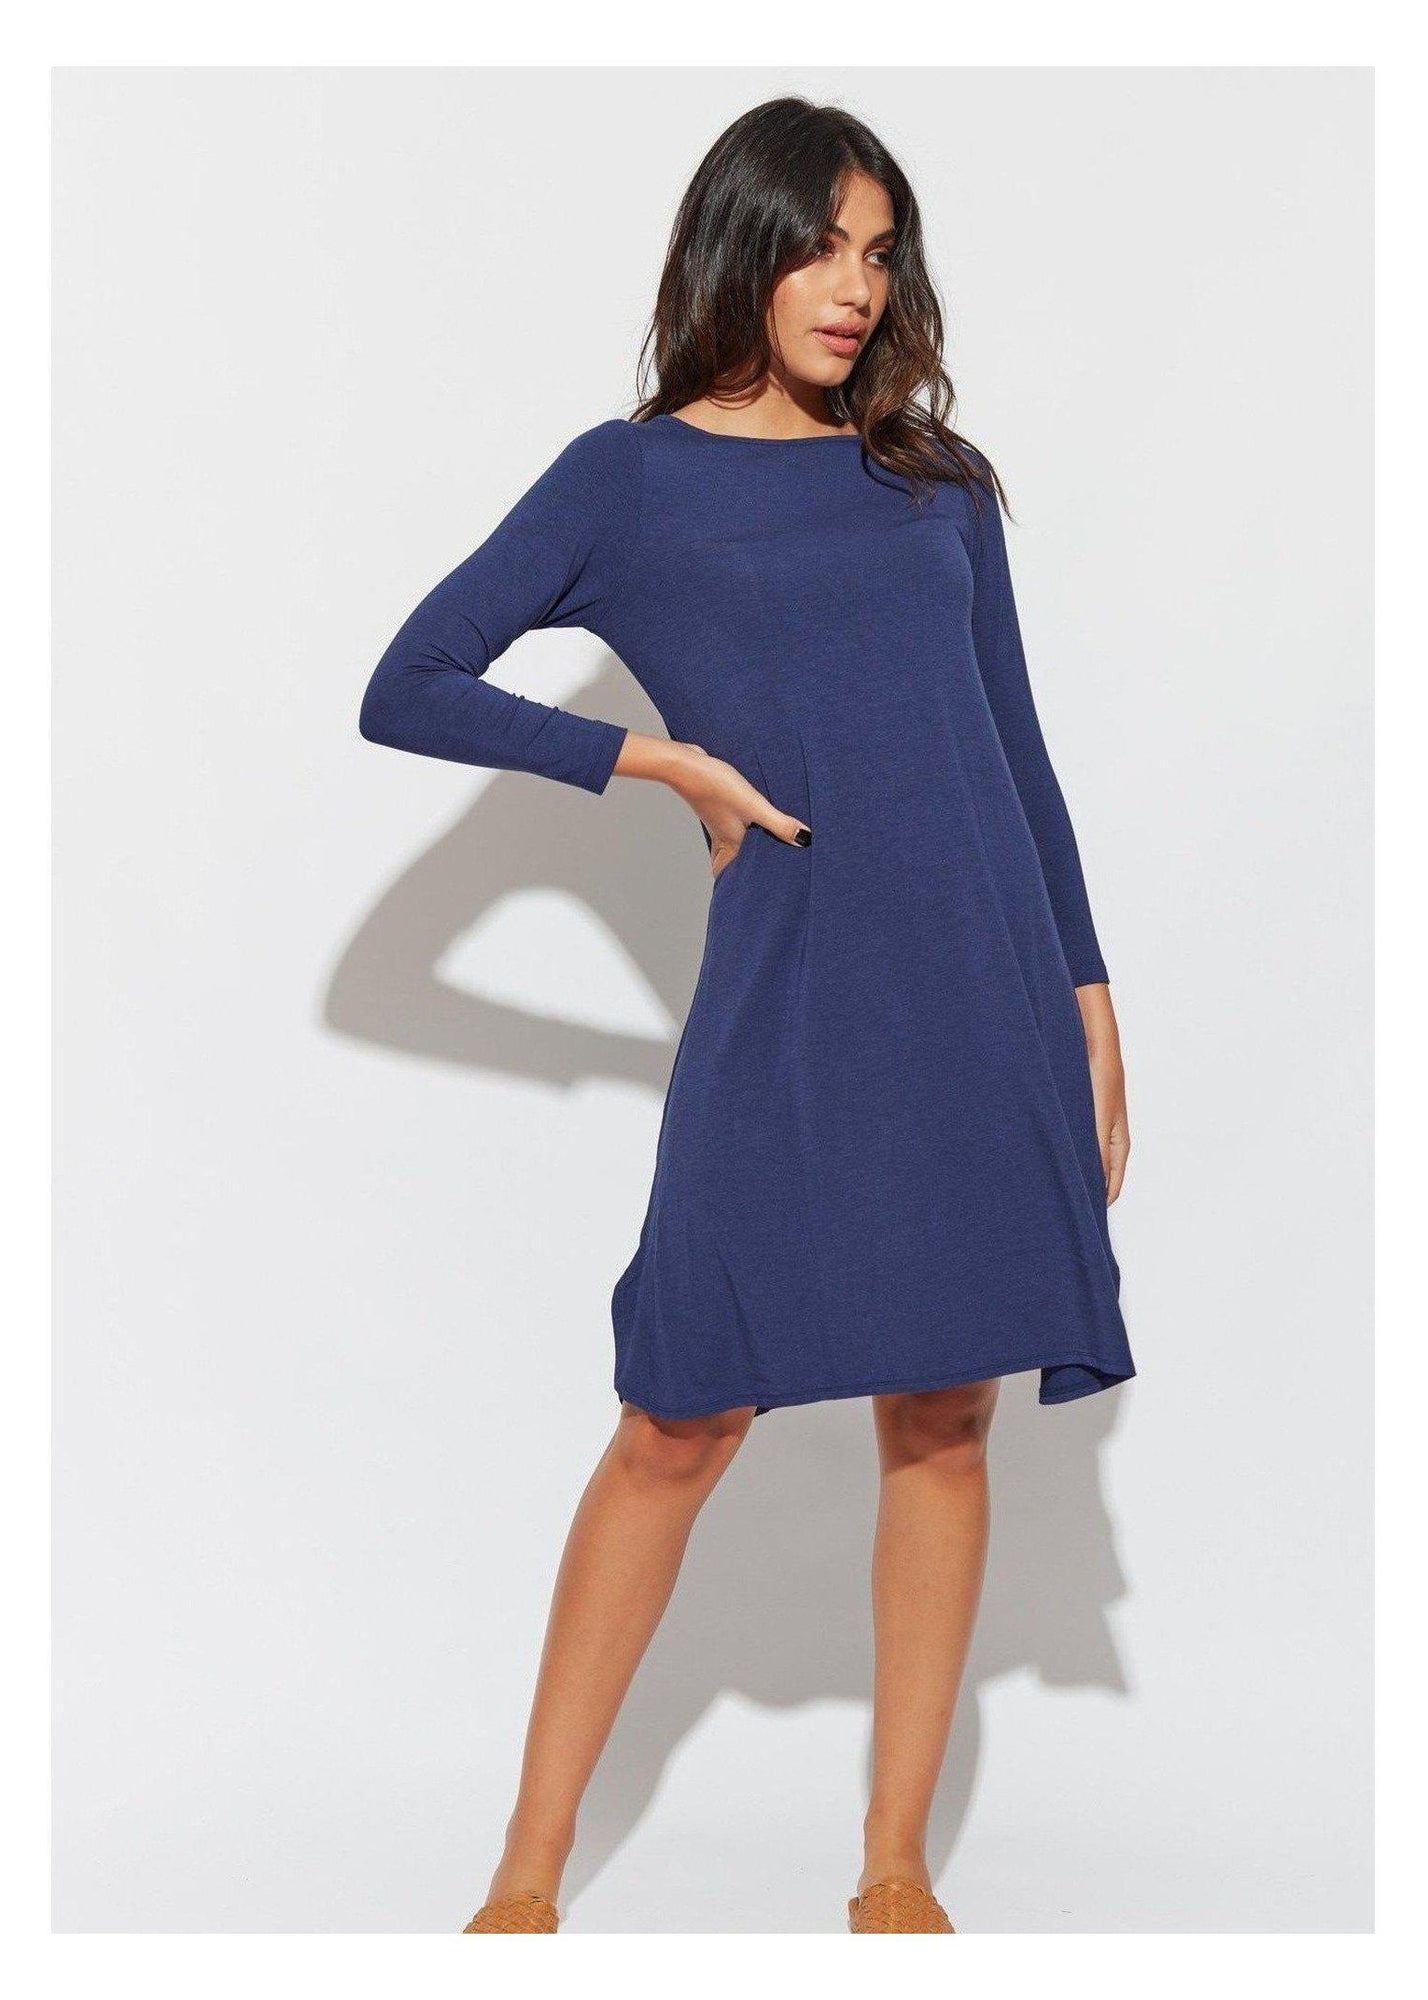 Cher Dress Sleeved-Unclassified-Lou Lou Australia